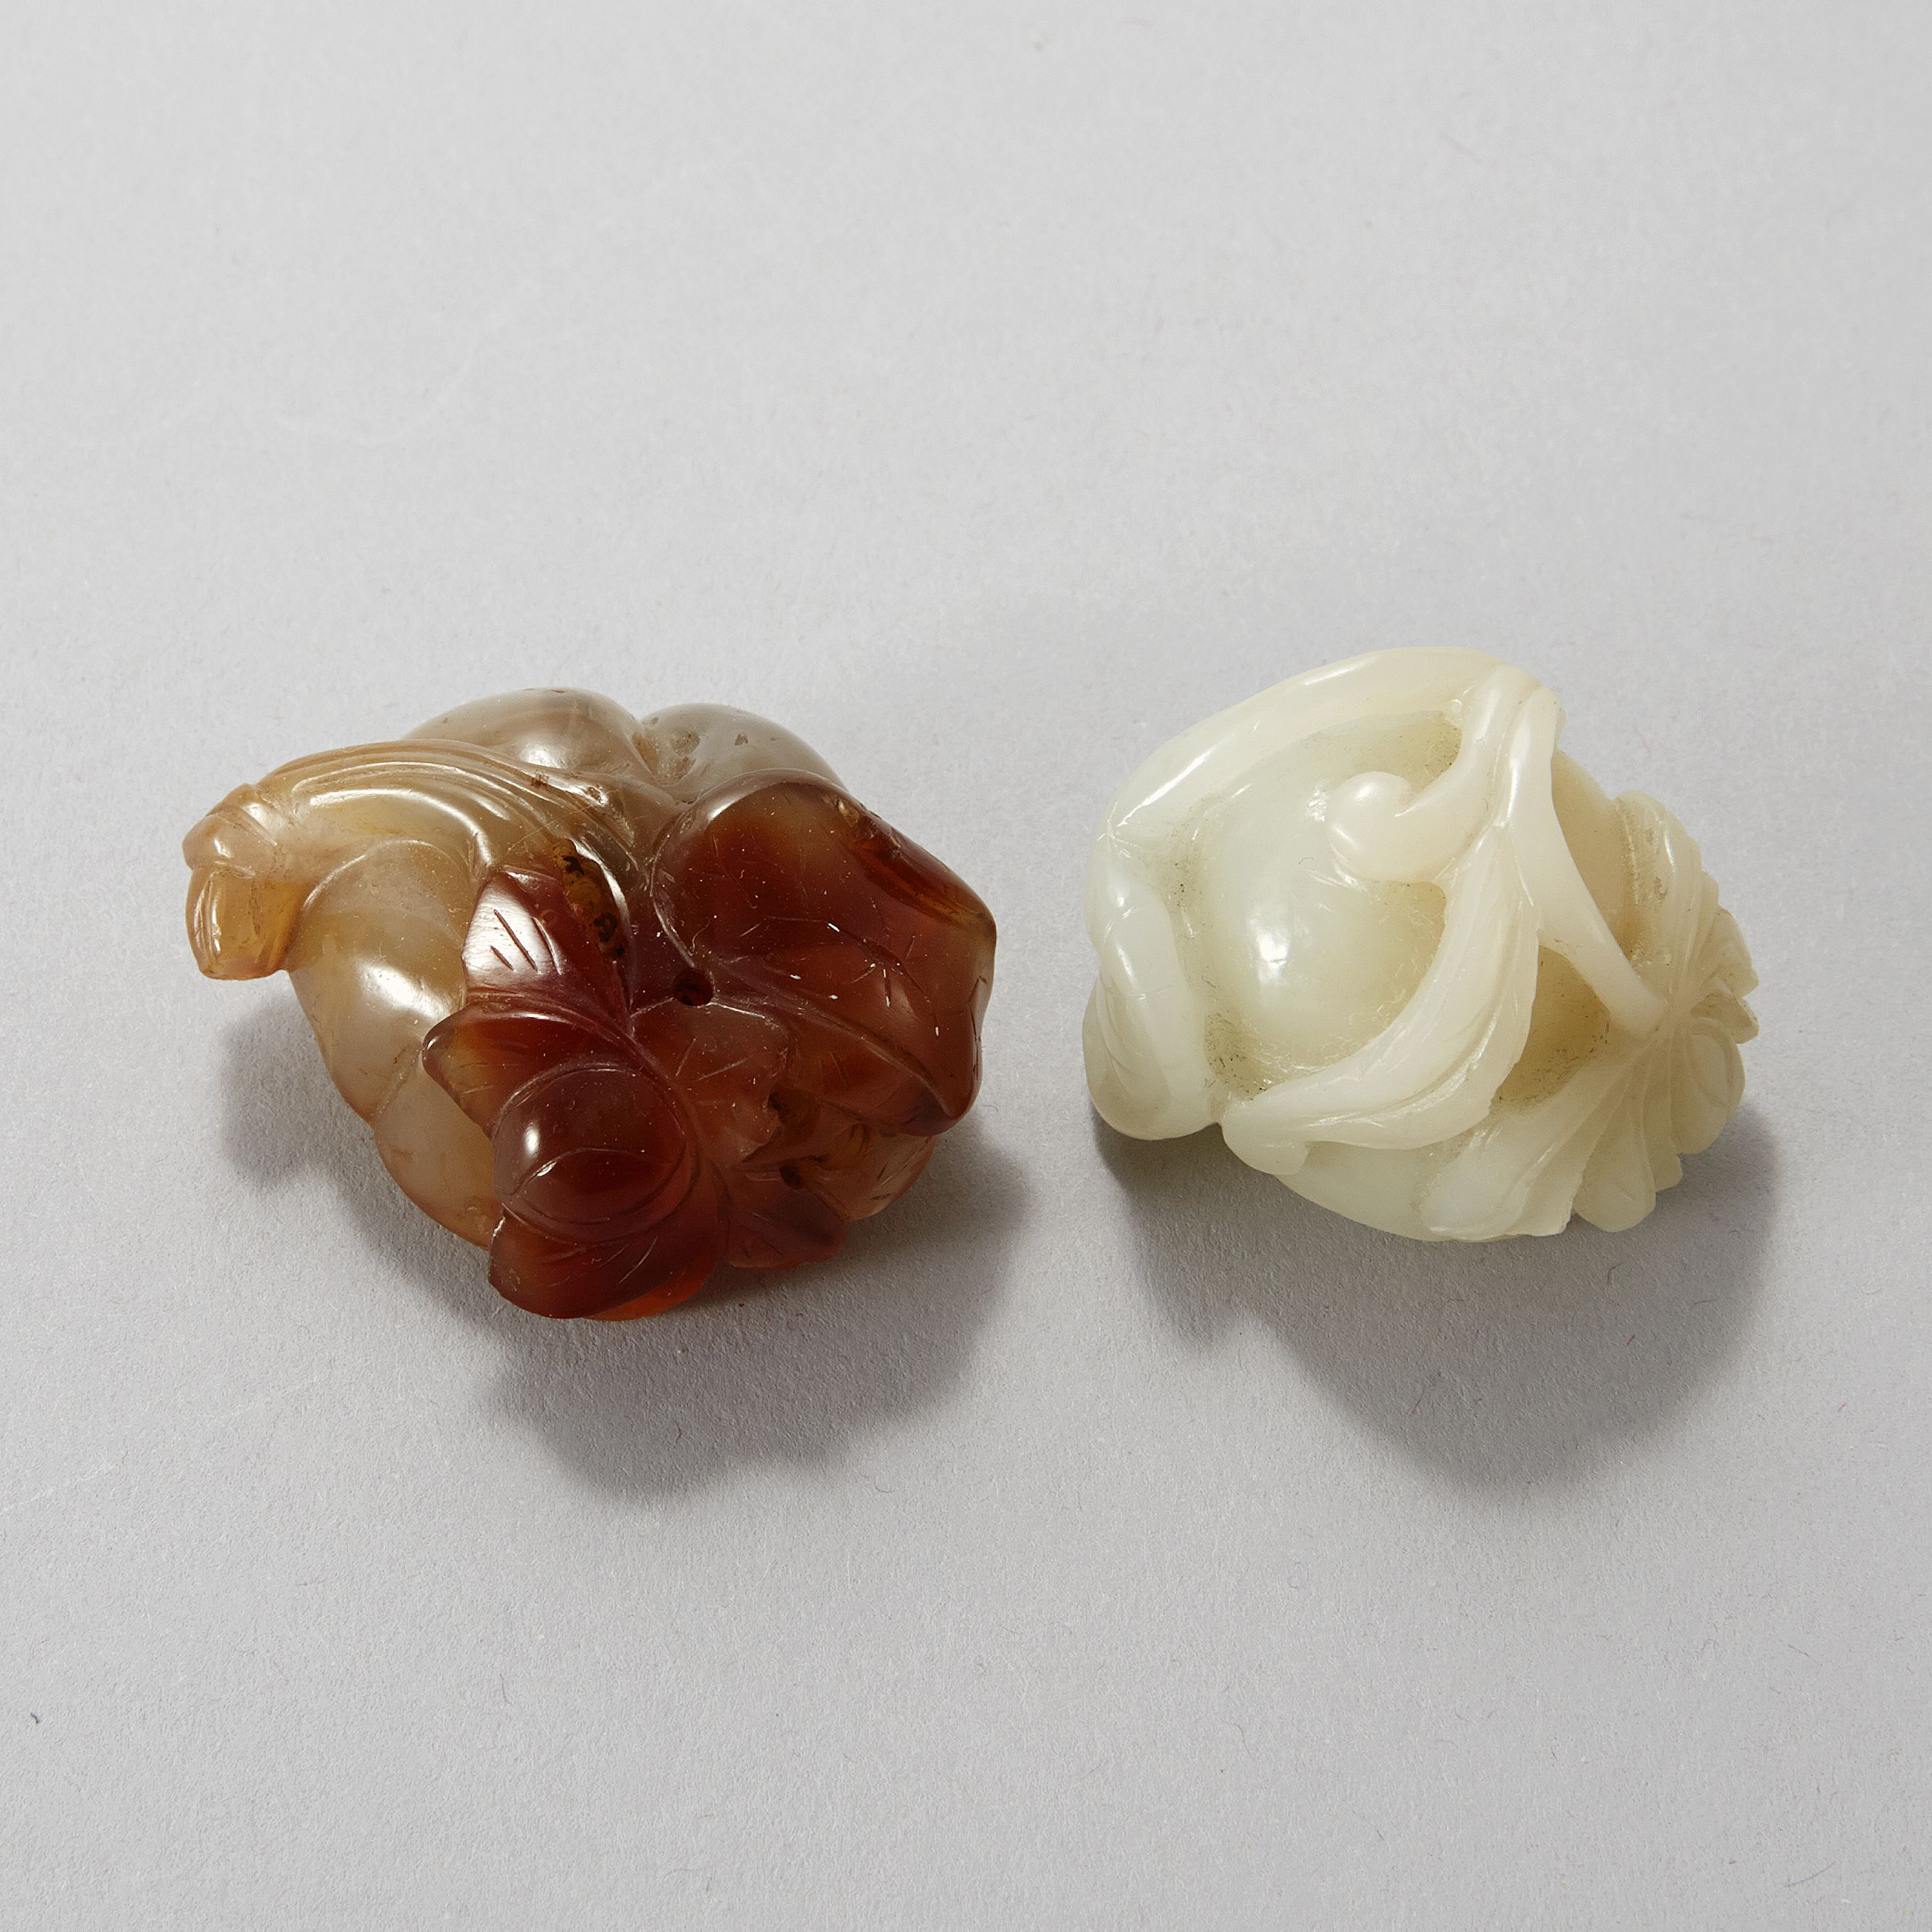 A Jade and An Agate Carvings